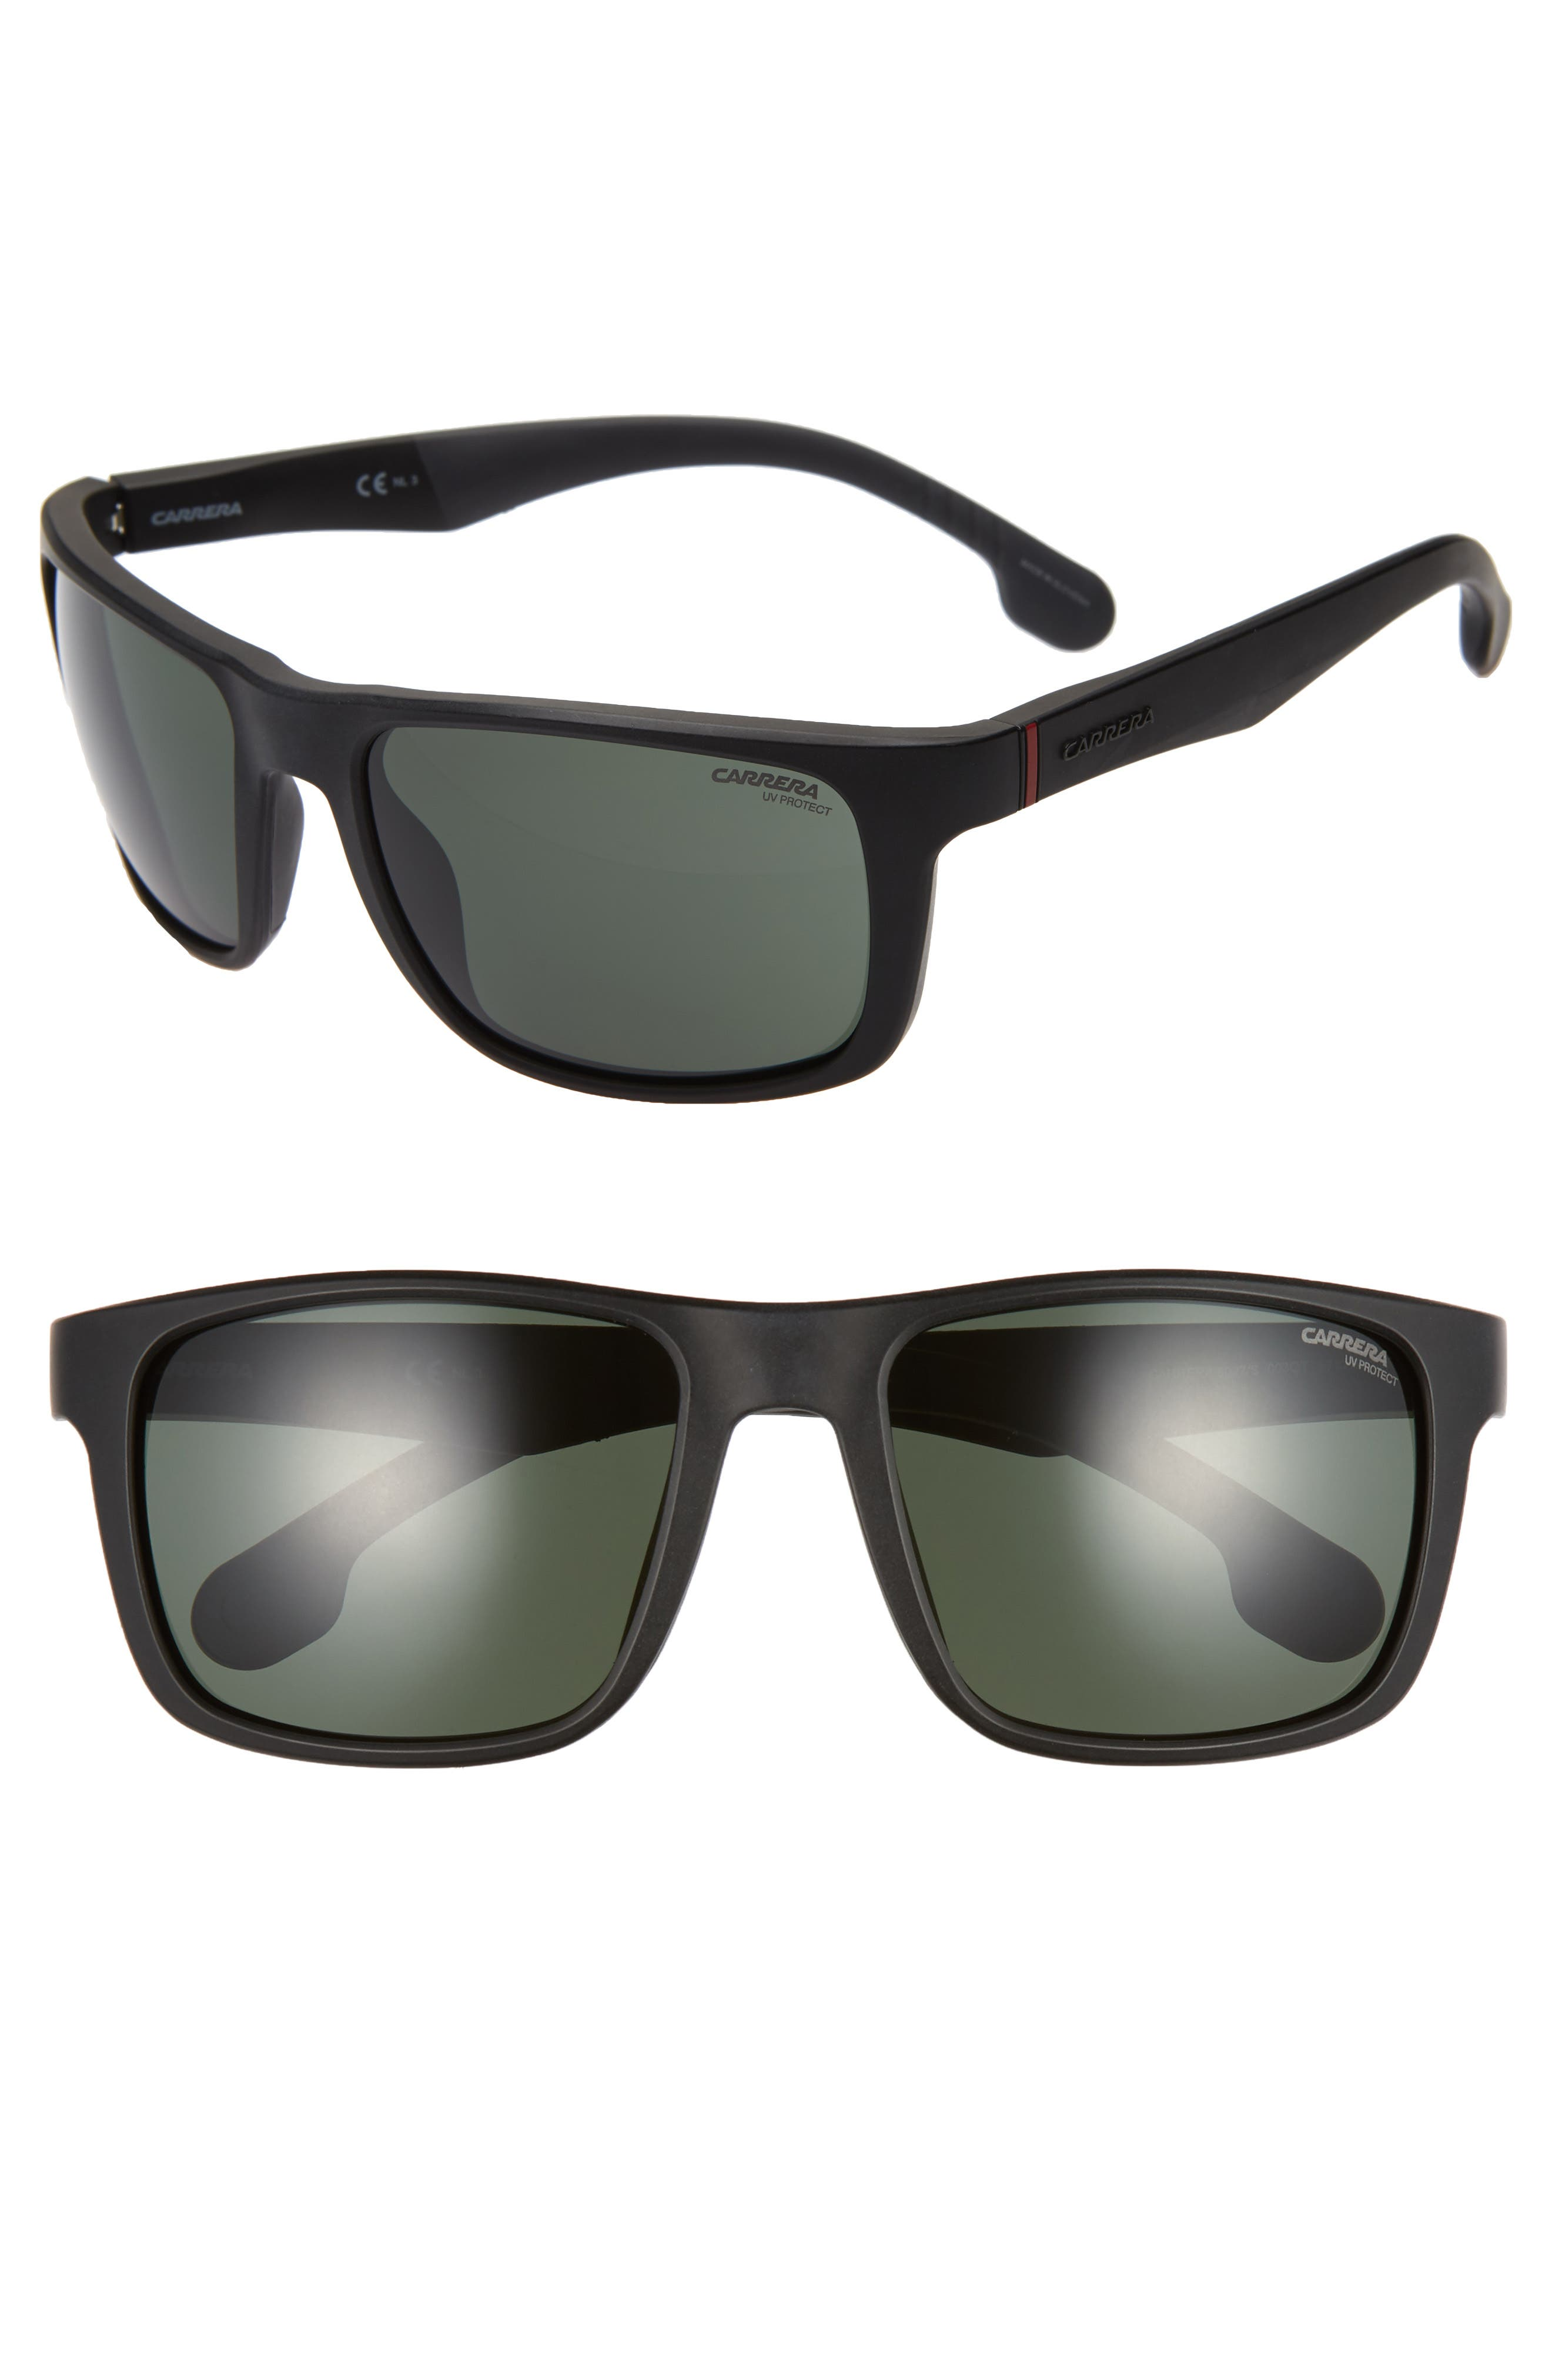 Carrera Eyewear 57Mm Wrap Sunglasses - Matte Black